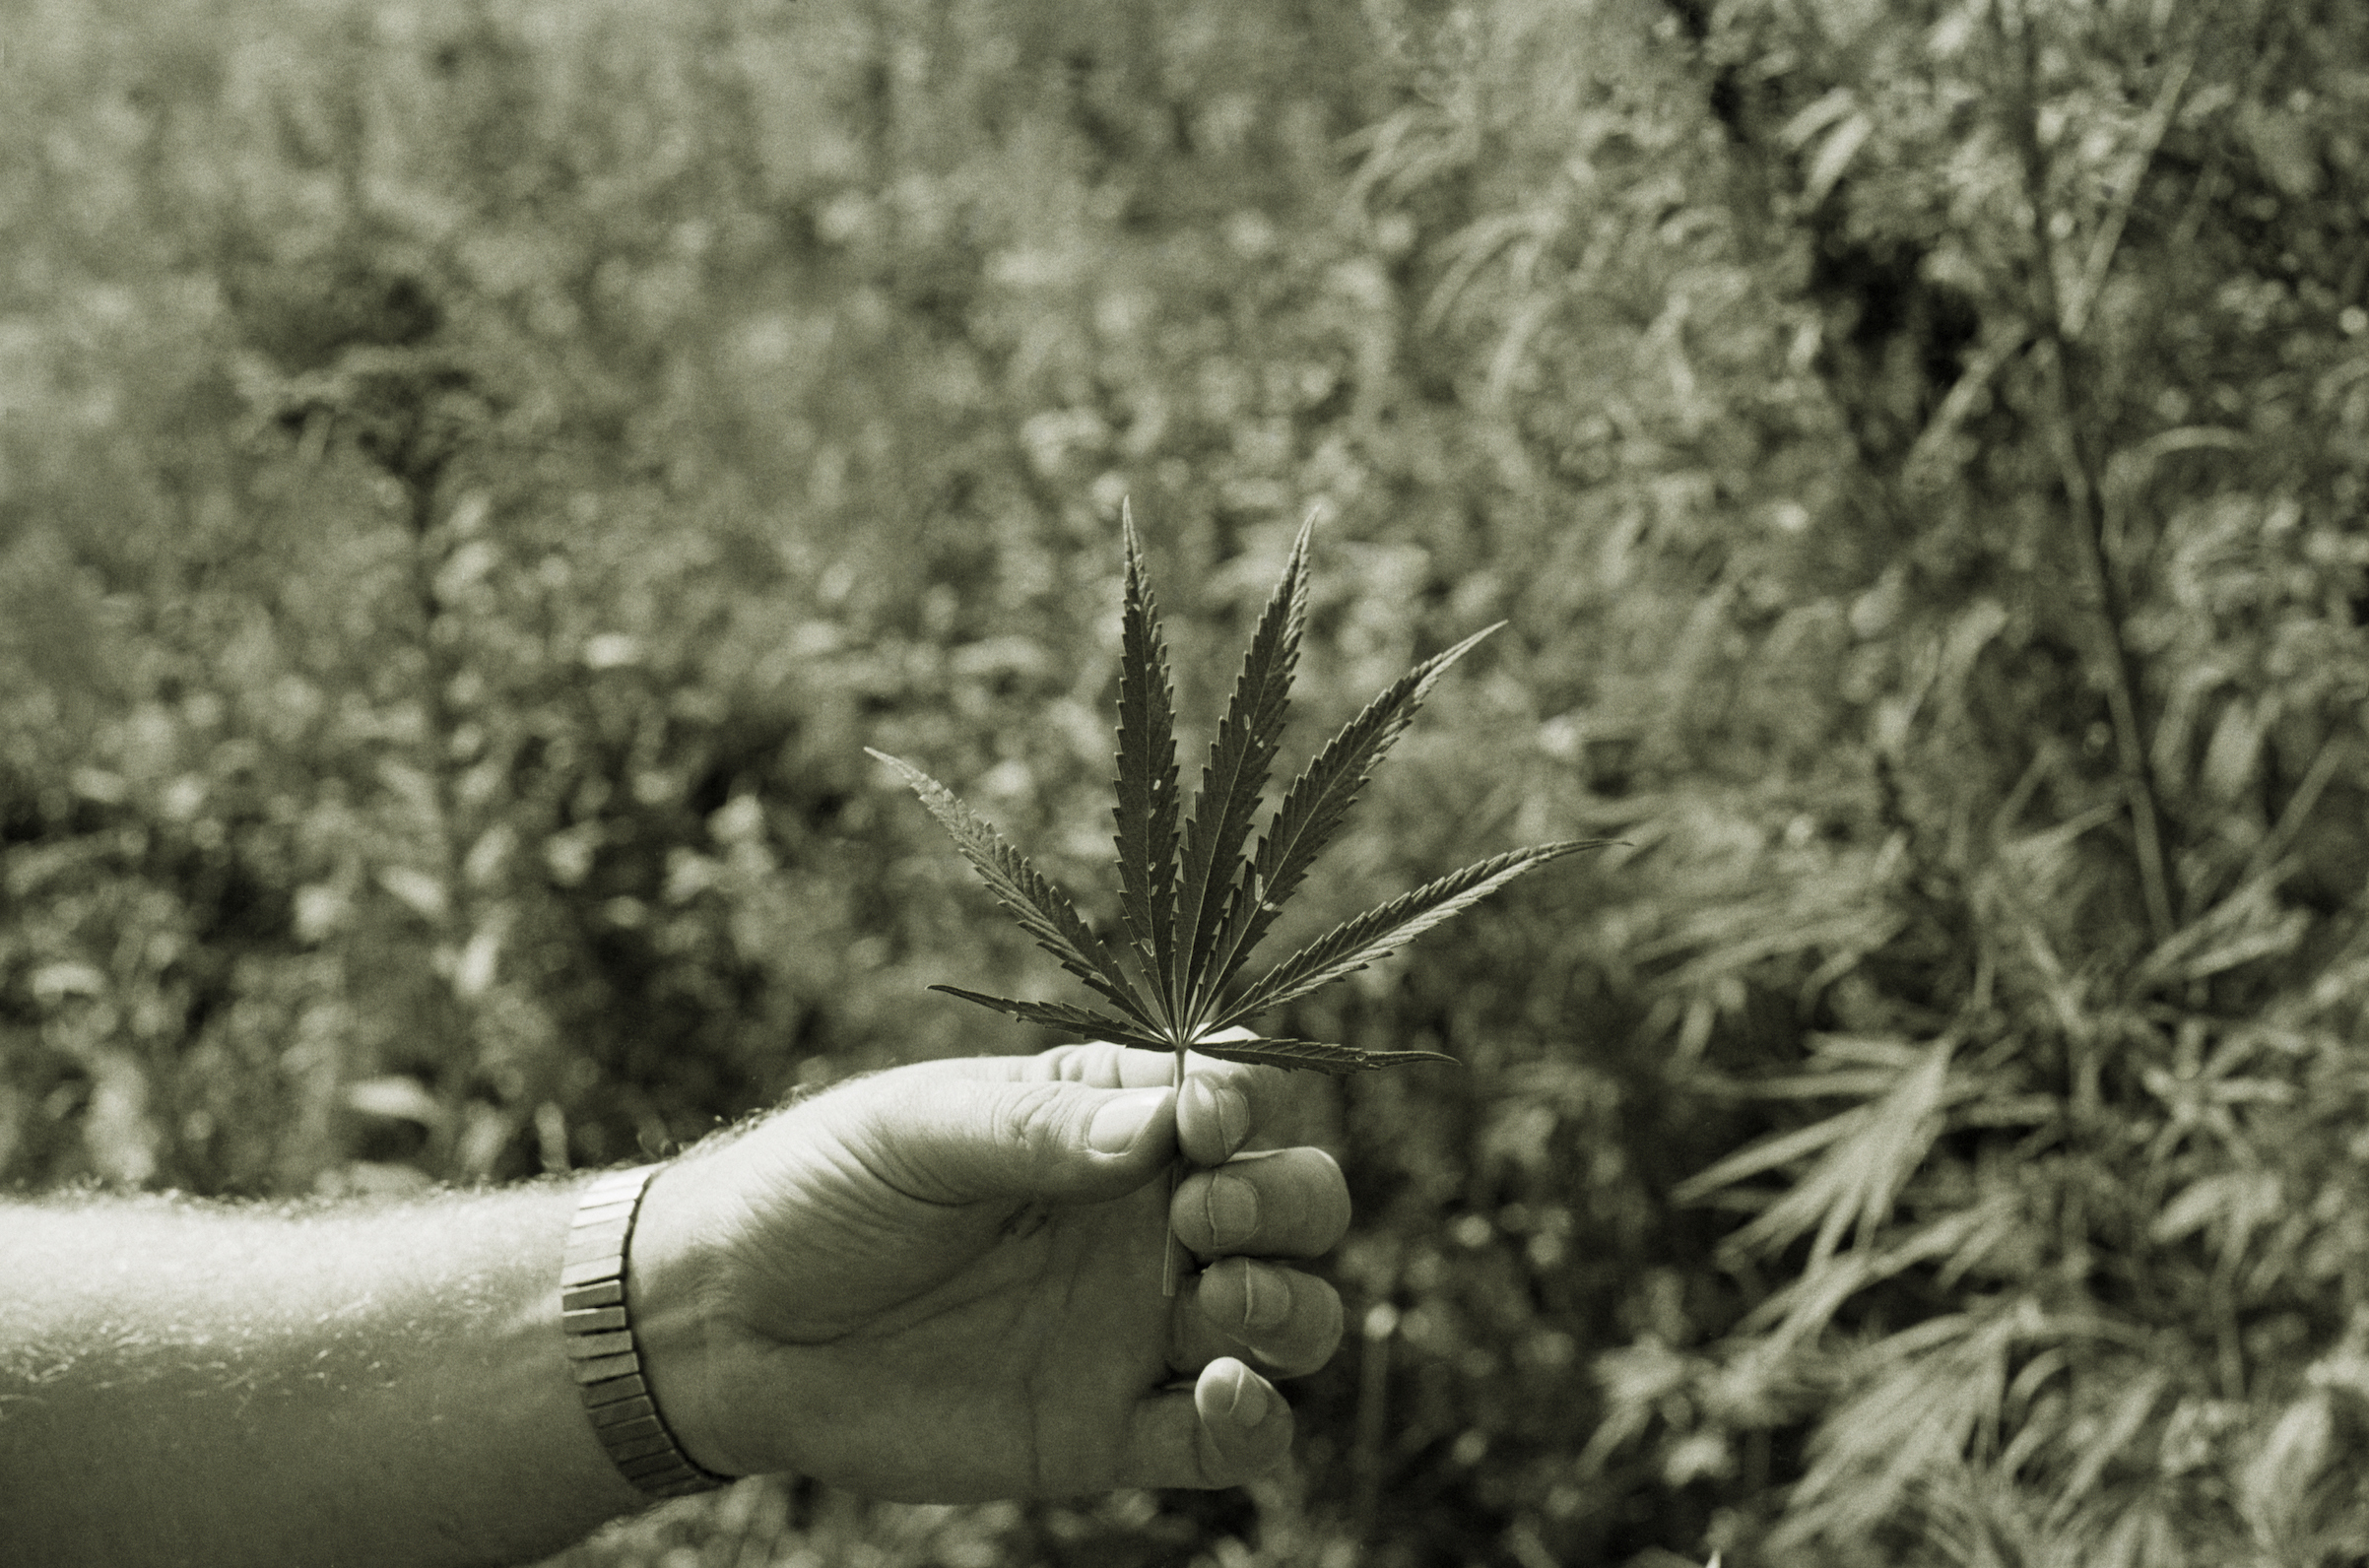 A section of leaves from a wild marijuana plant is held up for close inspection in a field west of Kearney, Neb., in 1973.